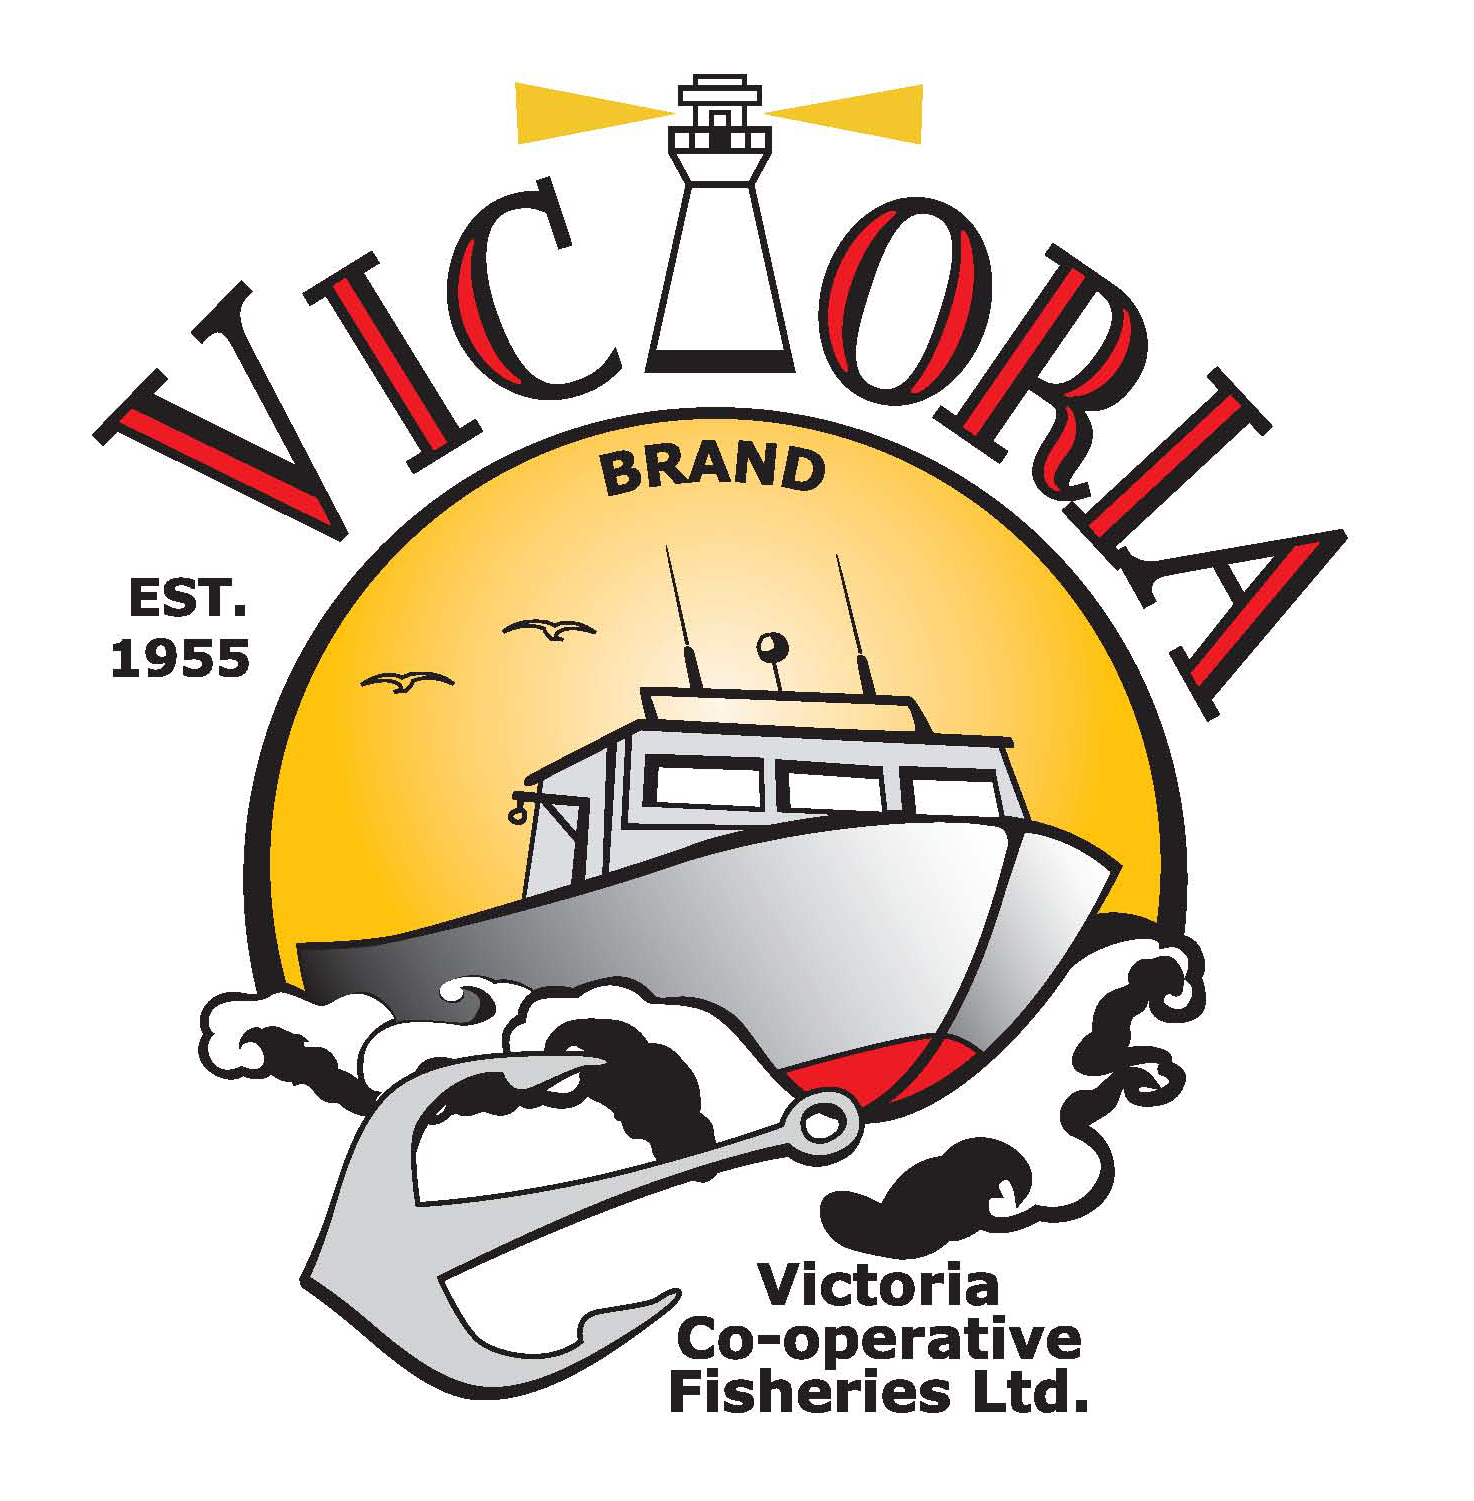 Victoria Co-op Fisheries Ltd